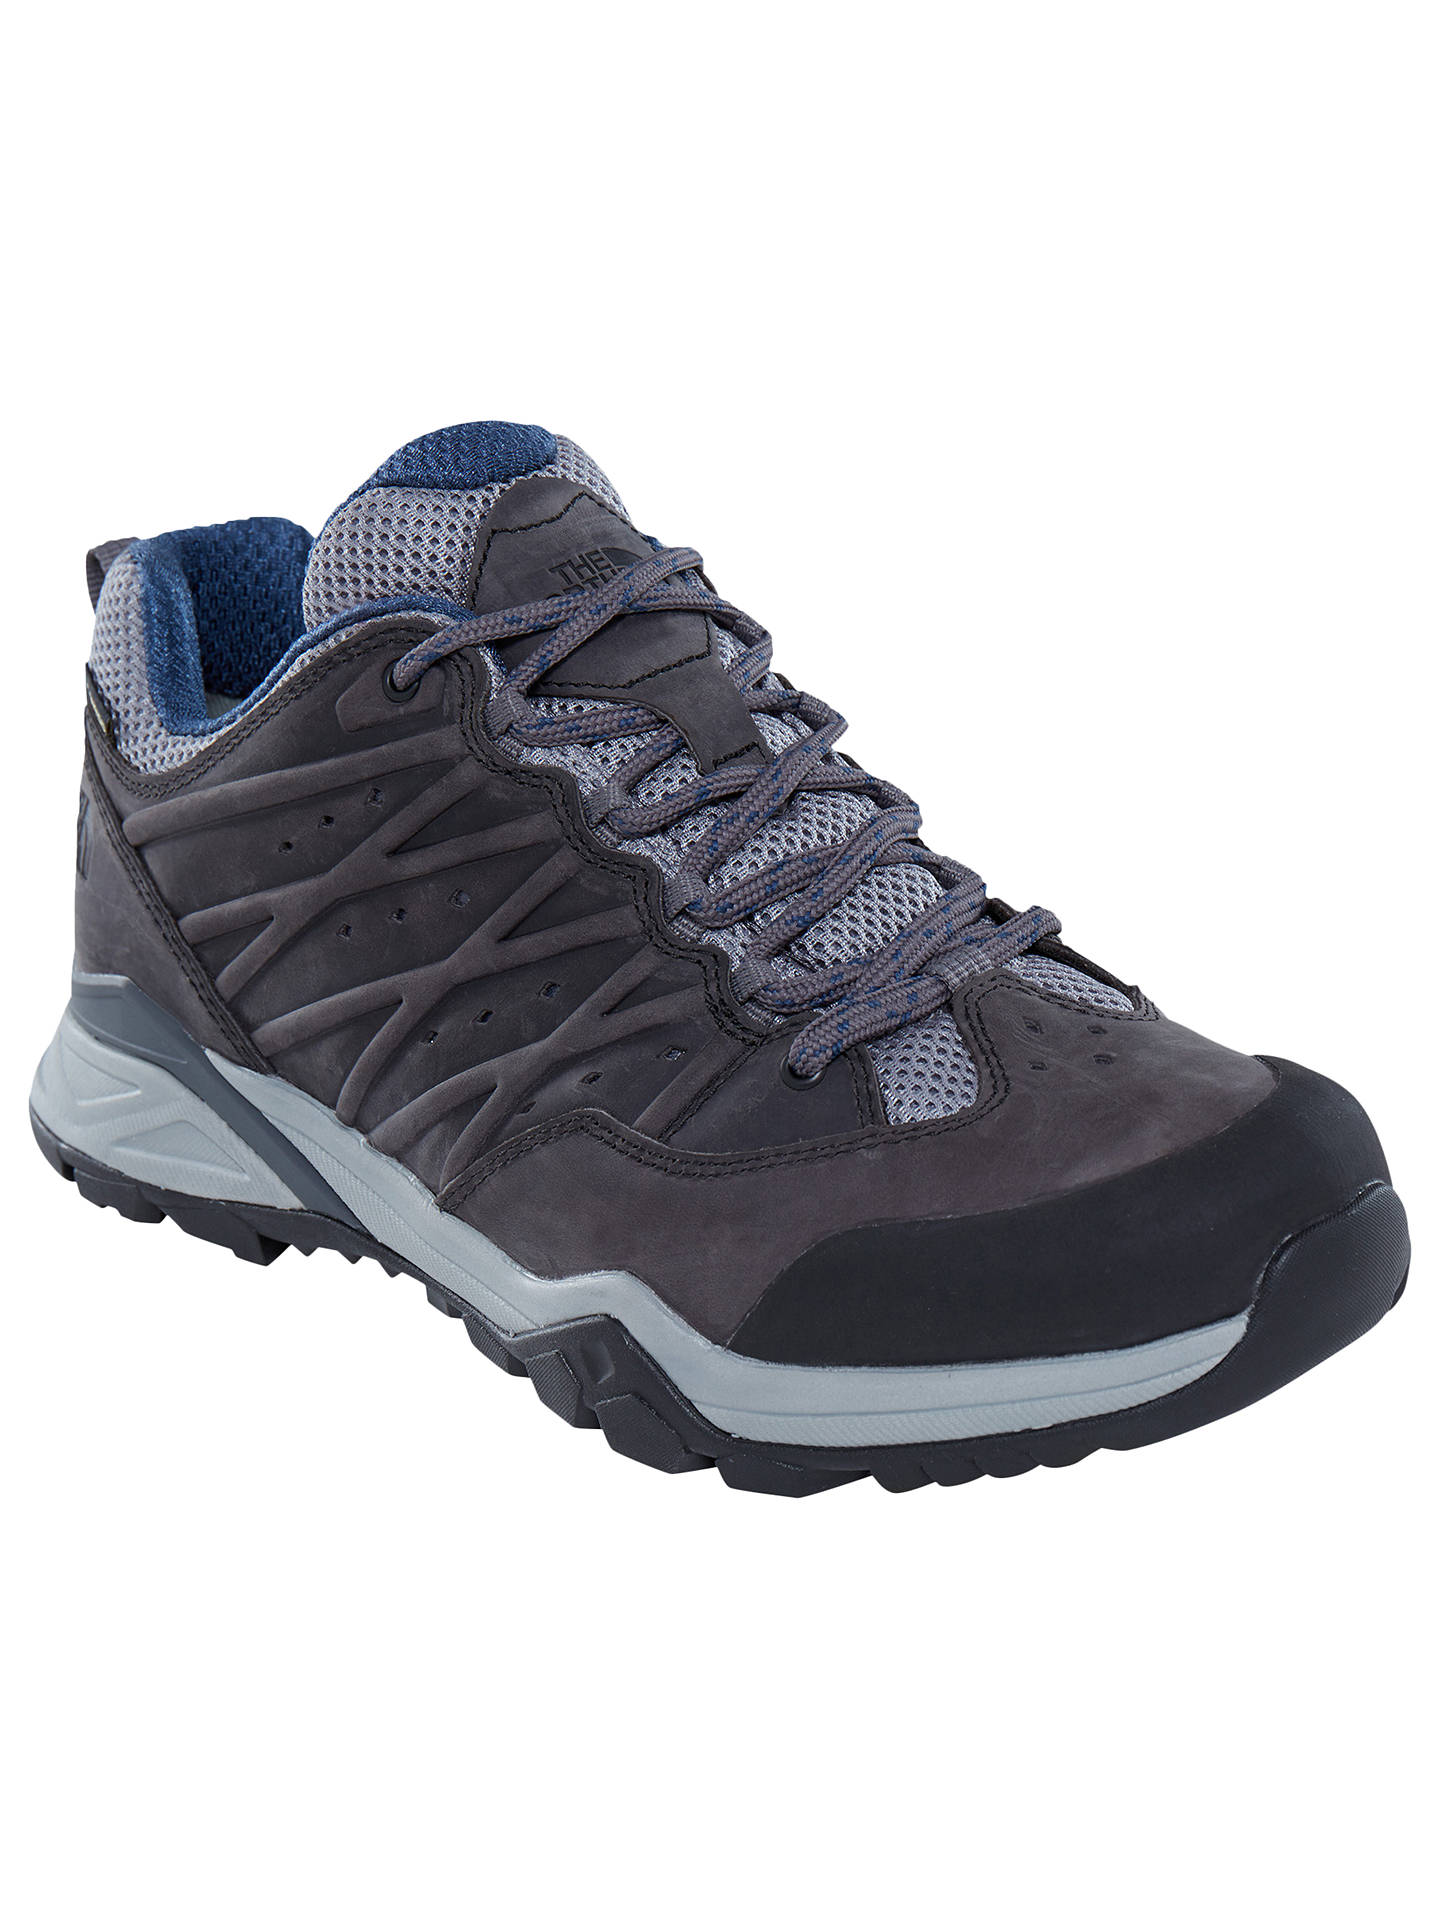 Buy The North Face Hedgehog Hike 2 GORE-TEX Men's Hiking Boots, Grey/Blue, 8 Online at johnlewis.com